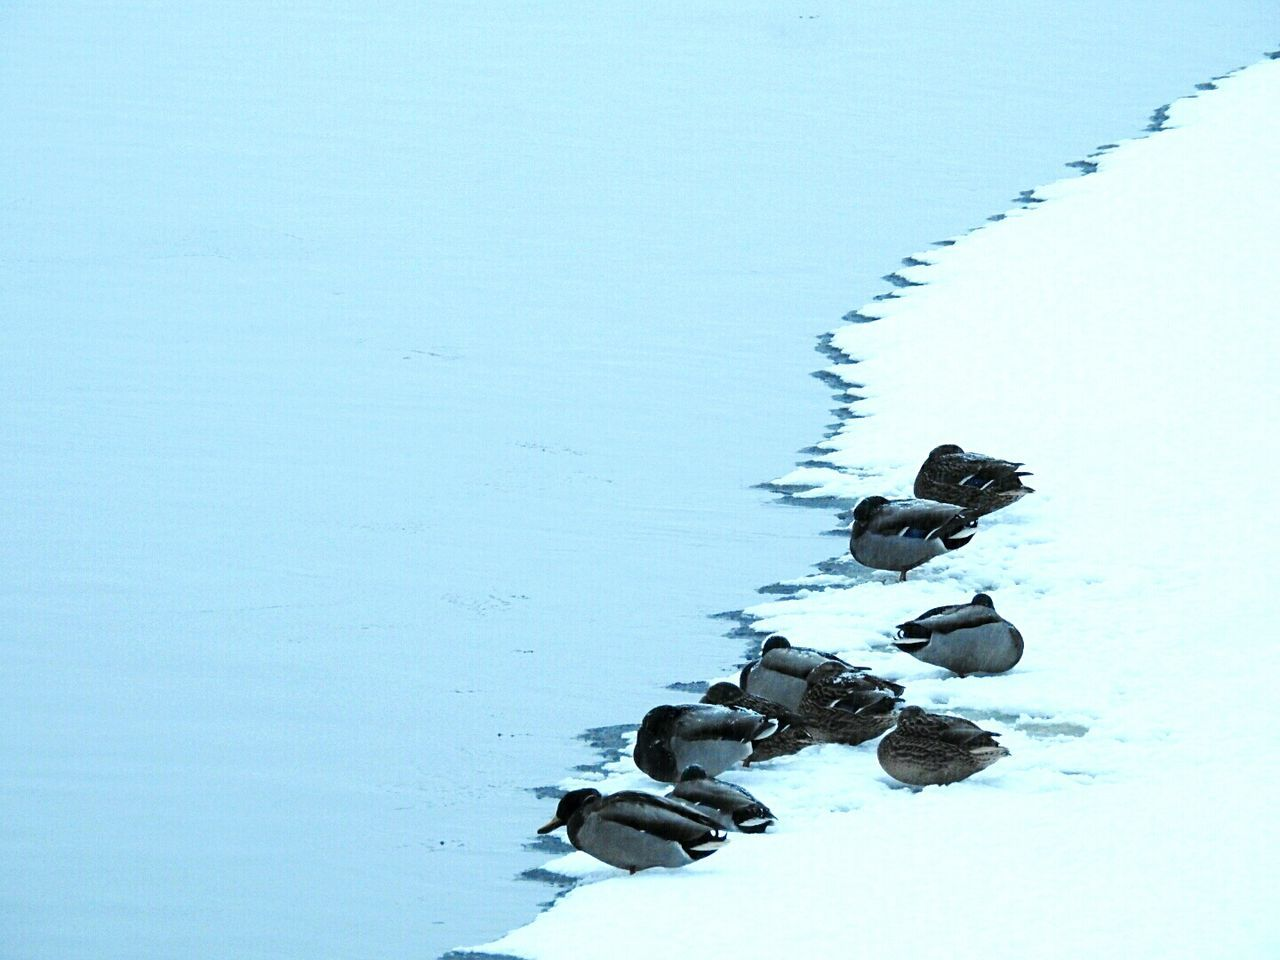 Winter Nature Snow Cold Temperature Lake No People Water Extreme Weather Beauty In Nature Togetherness Day Landscape Ducks On Ice Exploring Style Snow❄⛄ Elagin Island Park Bird Winter Colors Of Sankt-Peterburg Sankt-Petersburg Russia